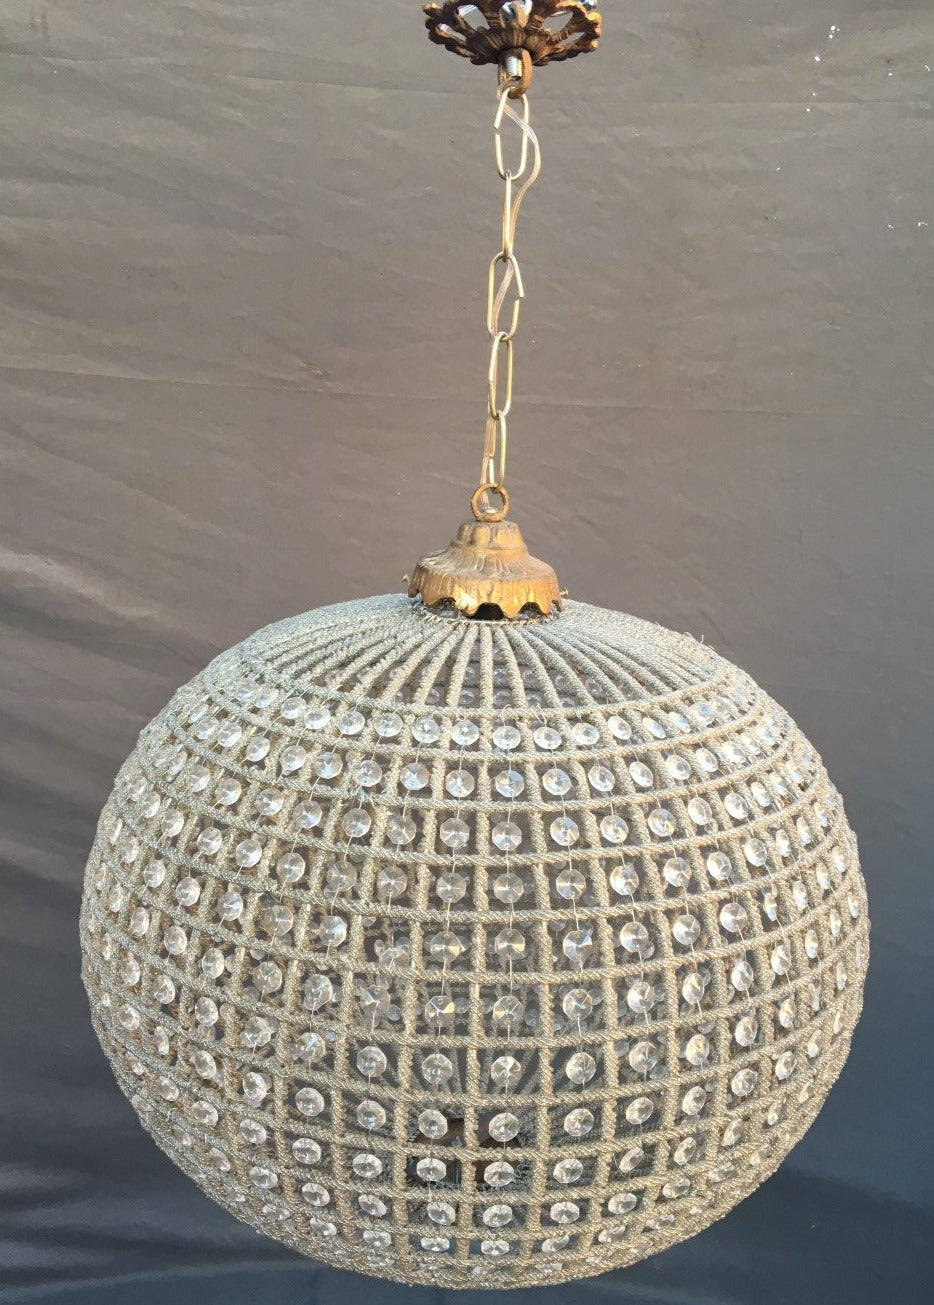 CRYSTAL BEADED BALL FORM HANGING LIGHT 21""